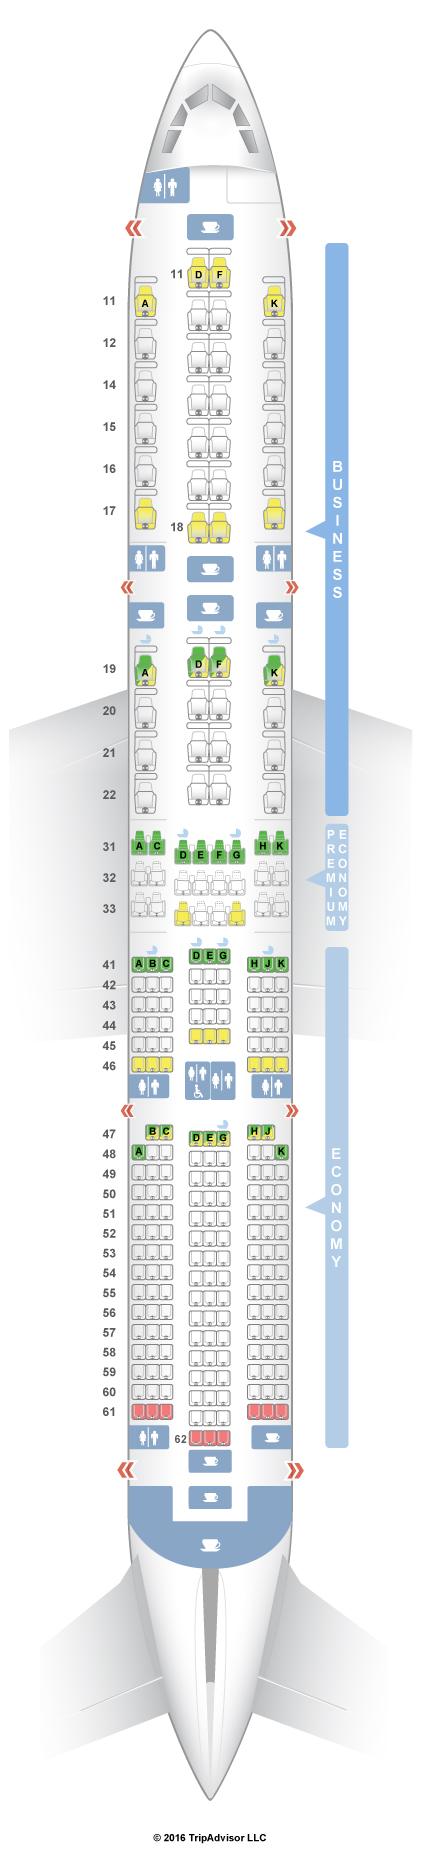 SeatGuru Seat Map Singapore Airlines Airbus A350-900 (359)